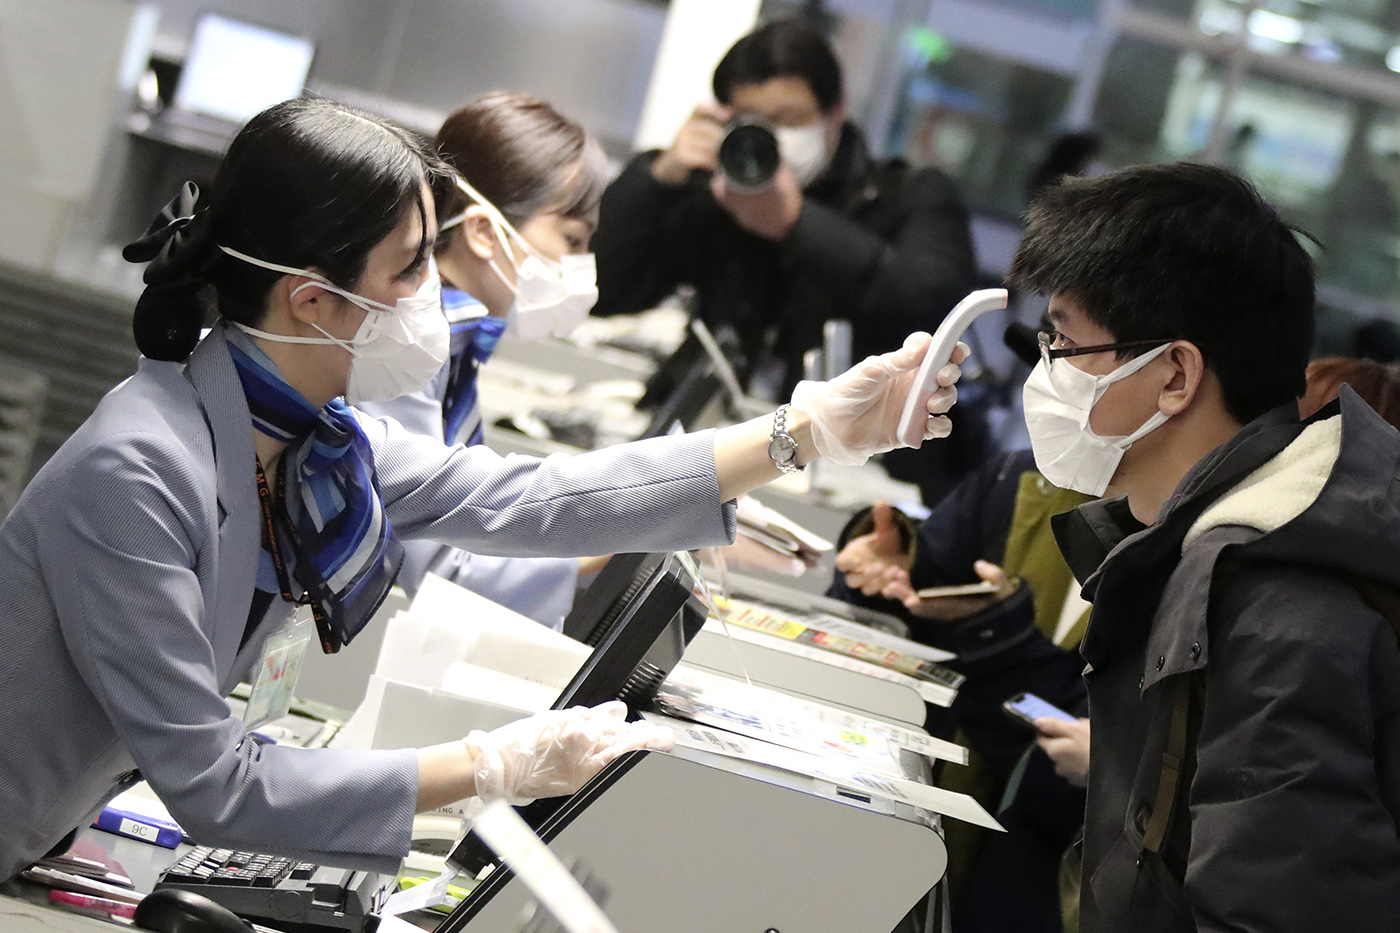 new confirmed cases of coronavirus infection in china are